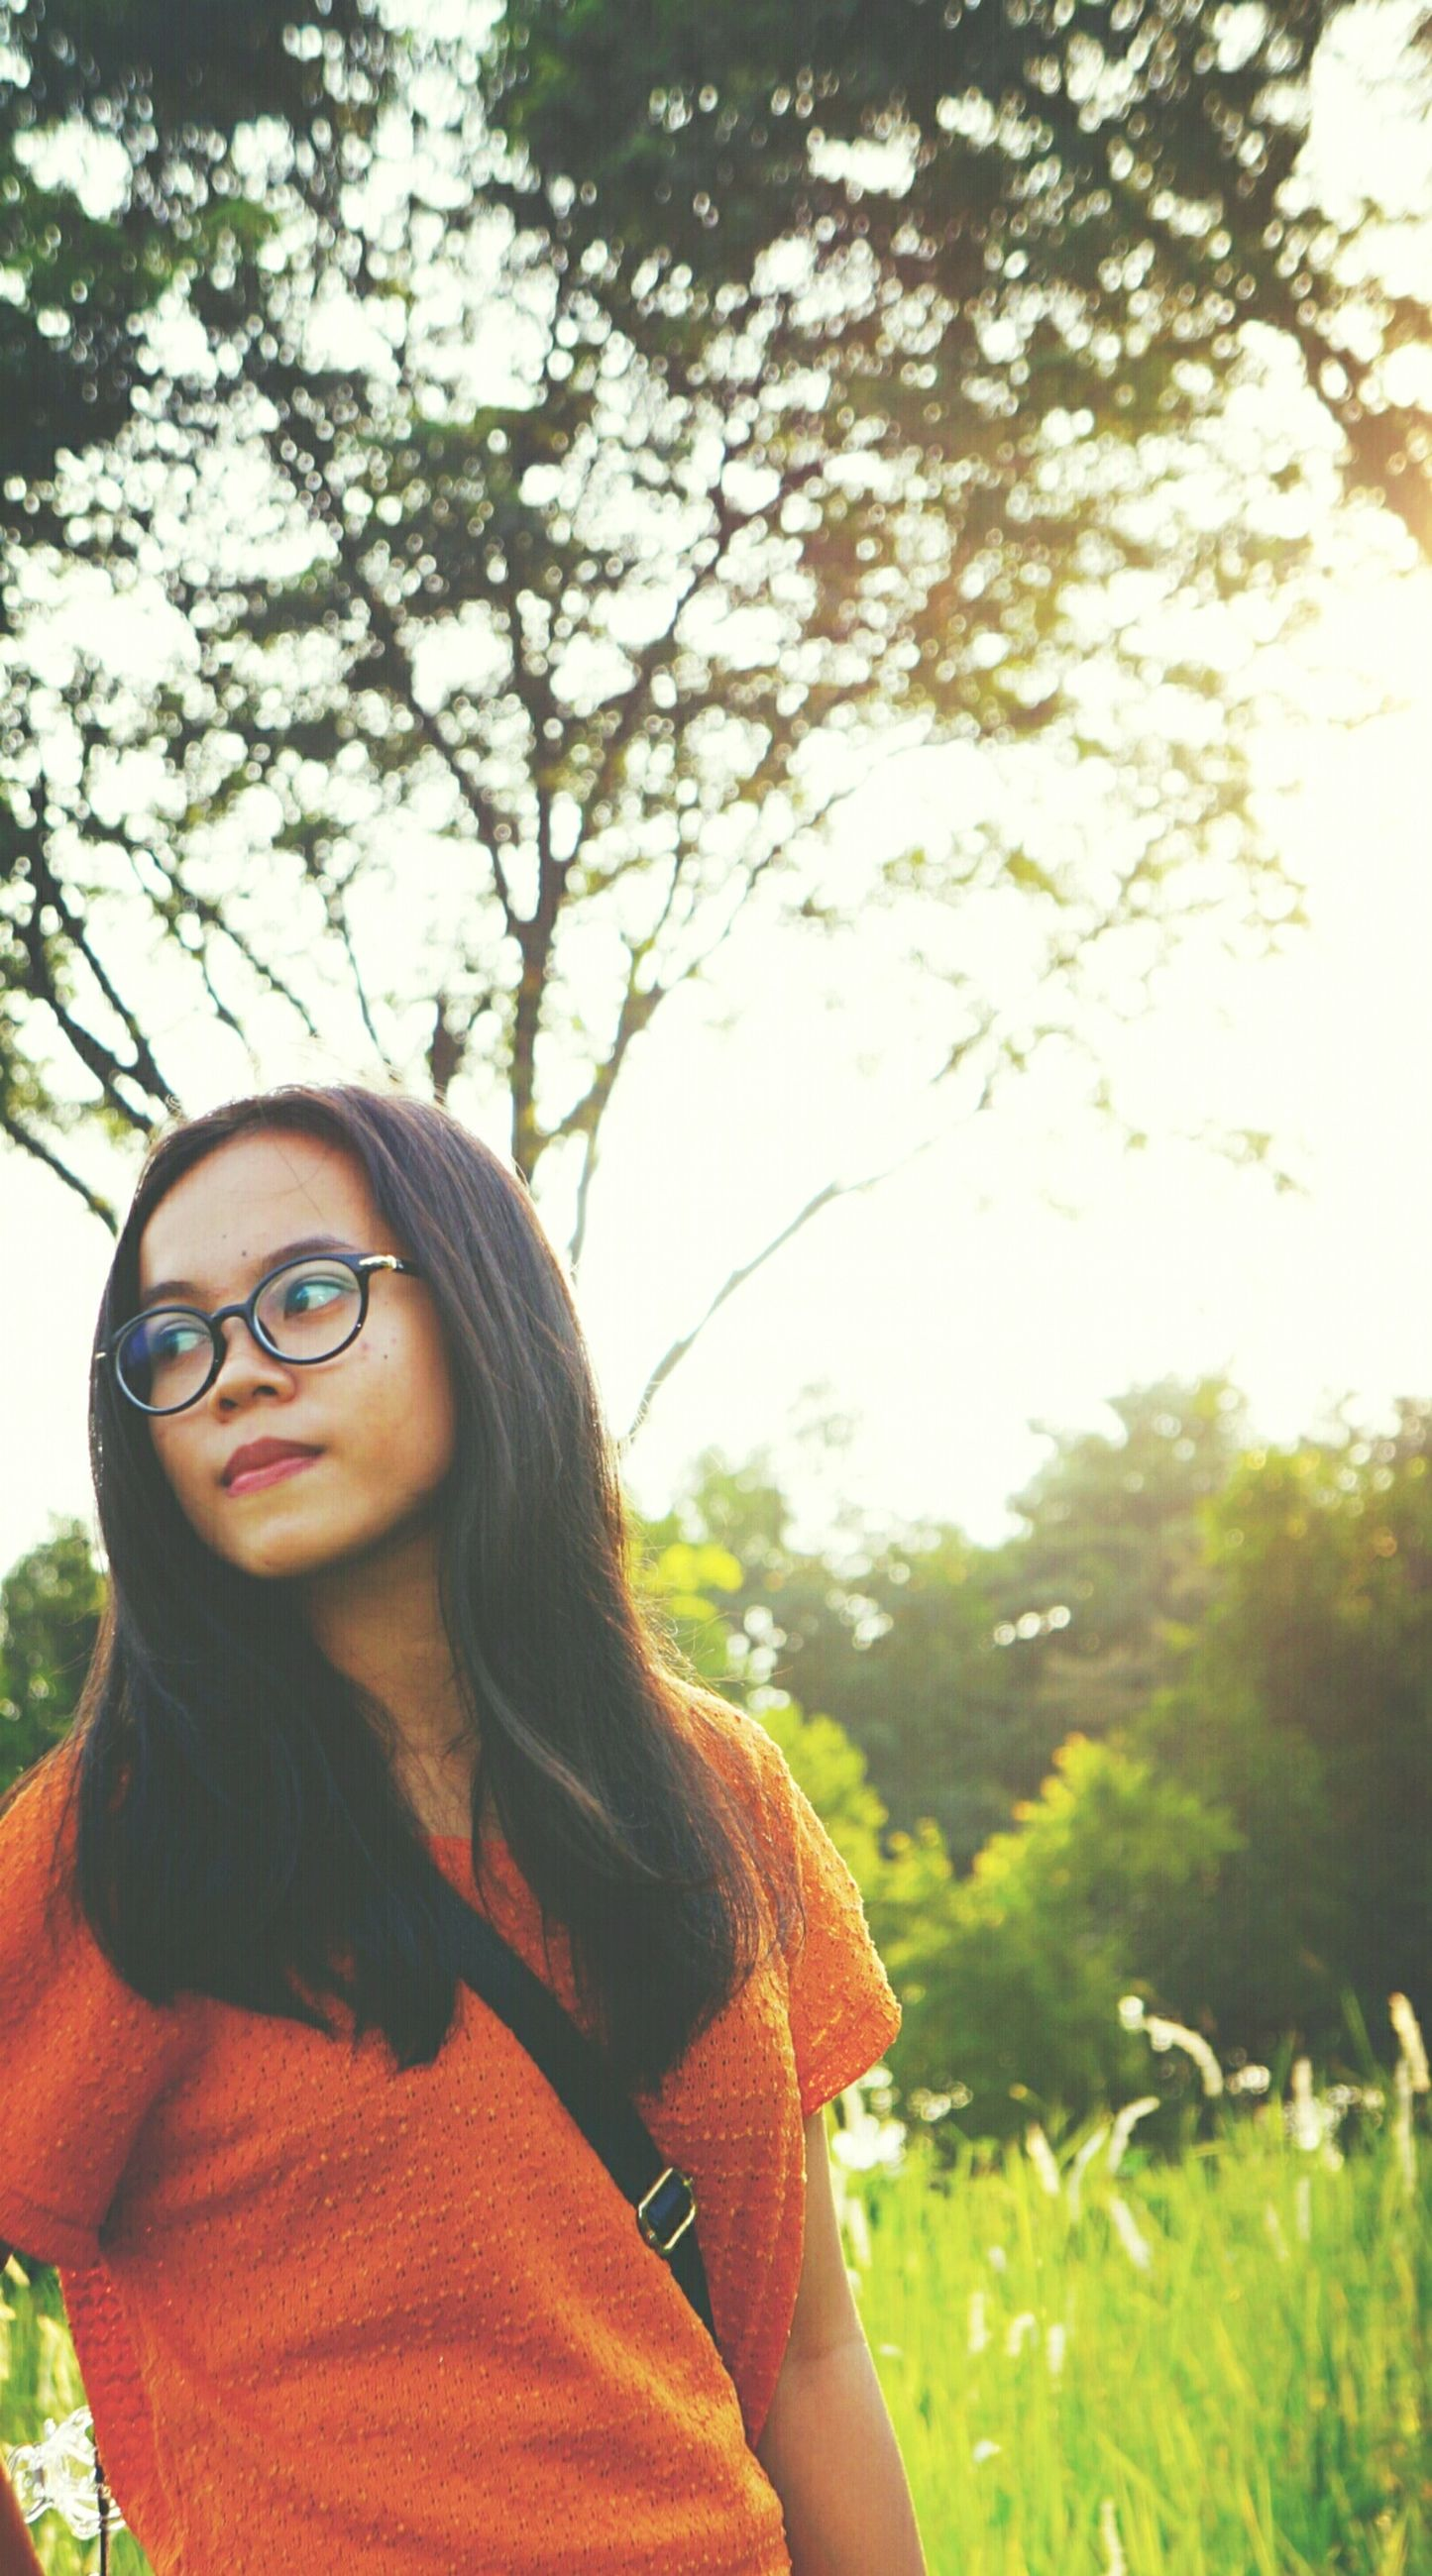 tree, lifestyles, young adult, leisure activity, person, young women, casual clothing, focus on foreground, headshot, front view, smiling, portrait, holding, looking at camera, waist up, sunglasses, day